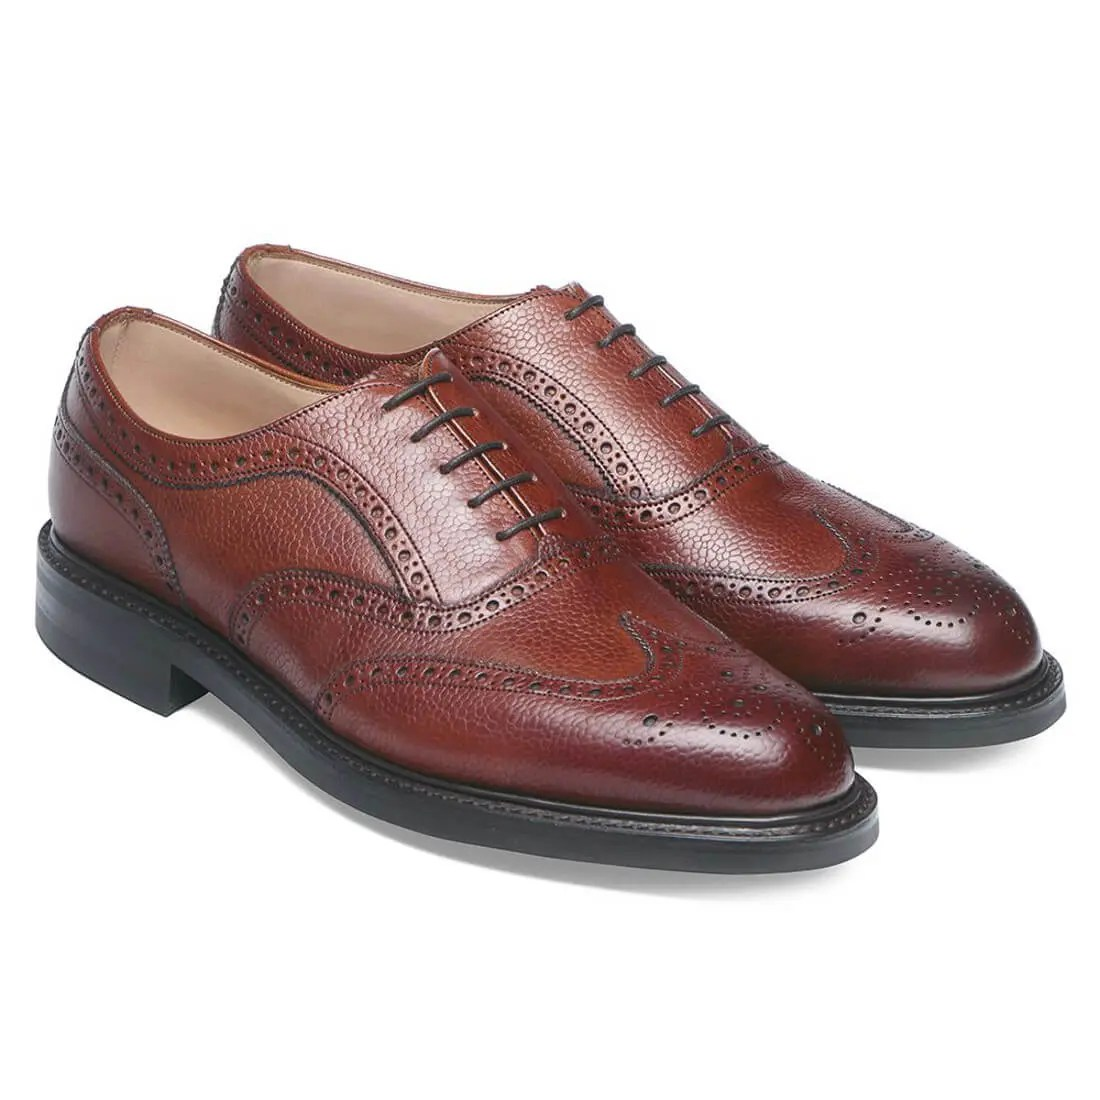 cheaney-hythe-wingcap-oxford-brogue-in-mahogany-grain-leather-p22-1181_zoom